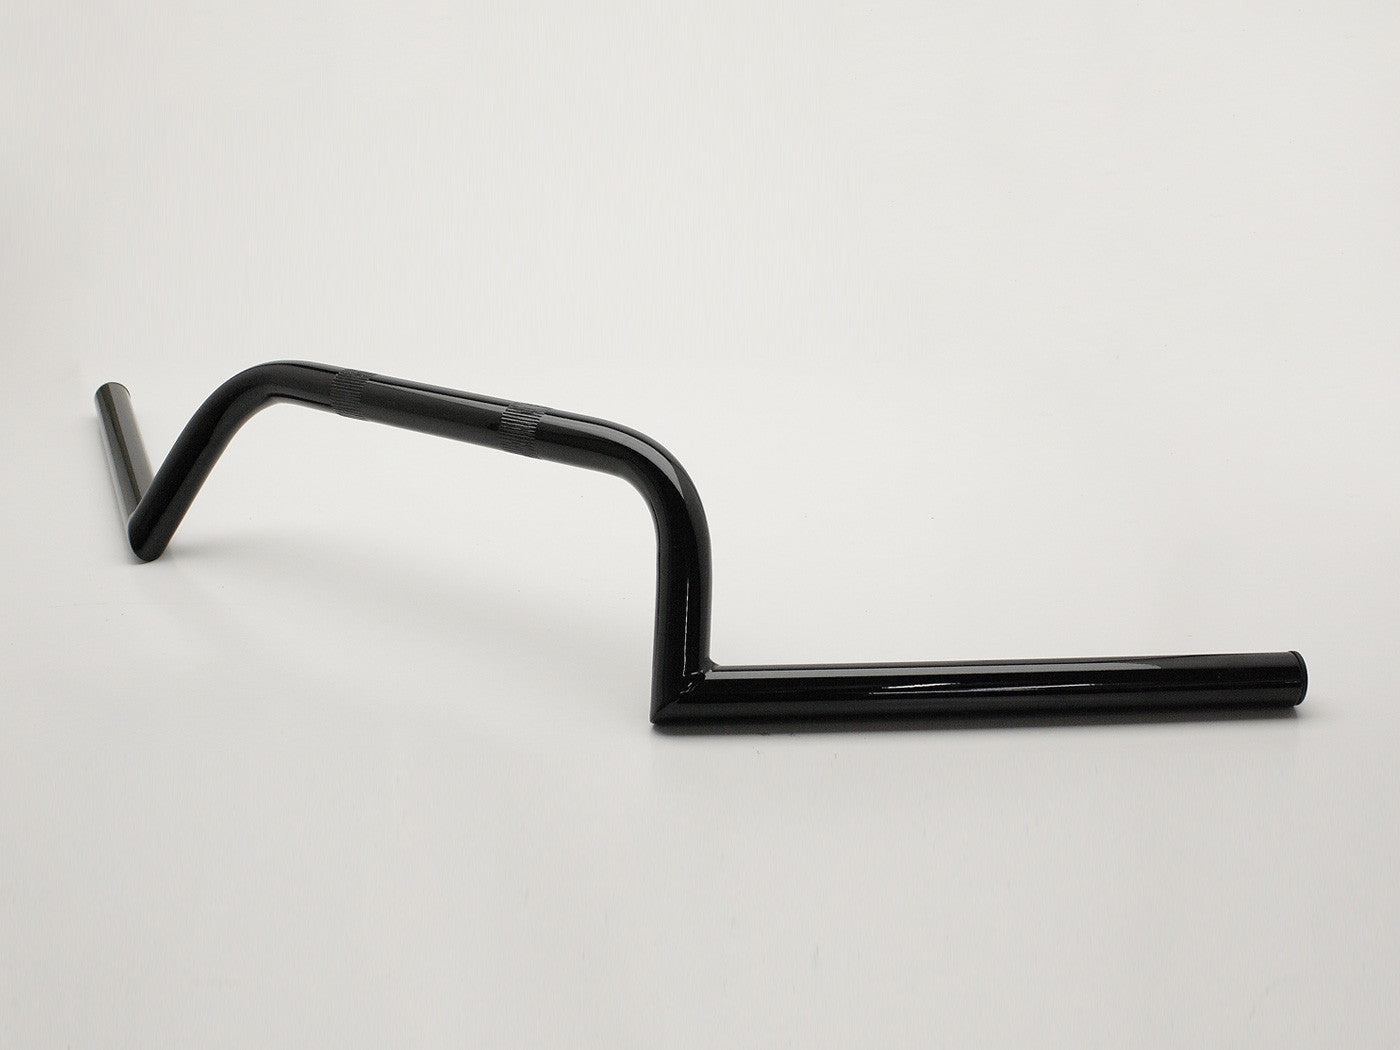 Handlebars, Ace Bars (Clubman), Black